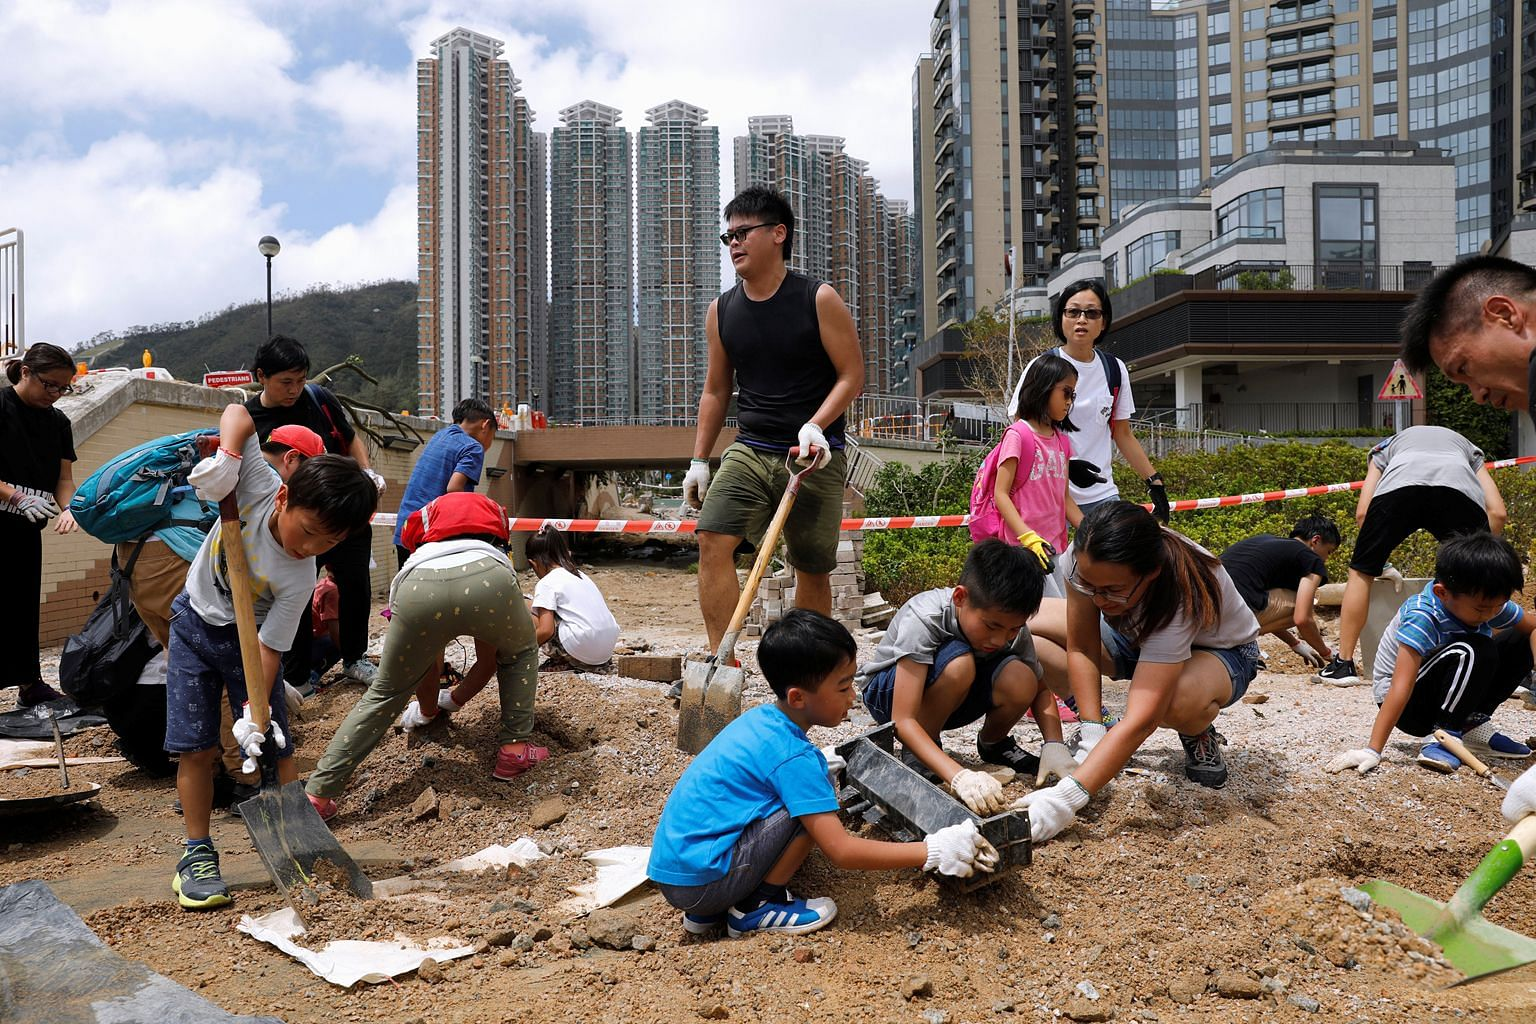 A Facebook post of ethnic African residents and asylum seekers cleaning up the city went viral, with almost a million views yesterday Volunteers clearing a damaged path yesterday after Typhoon Mangkhut swept through Hong Kong on Sunday. There were no